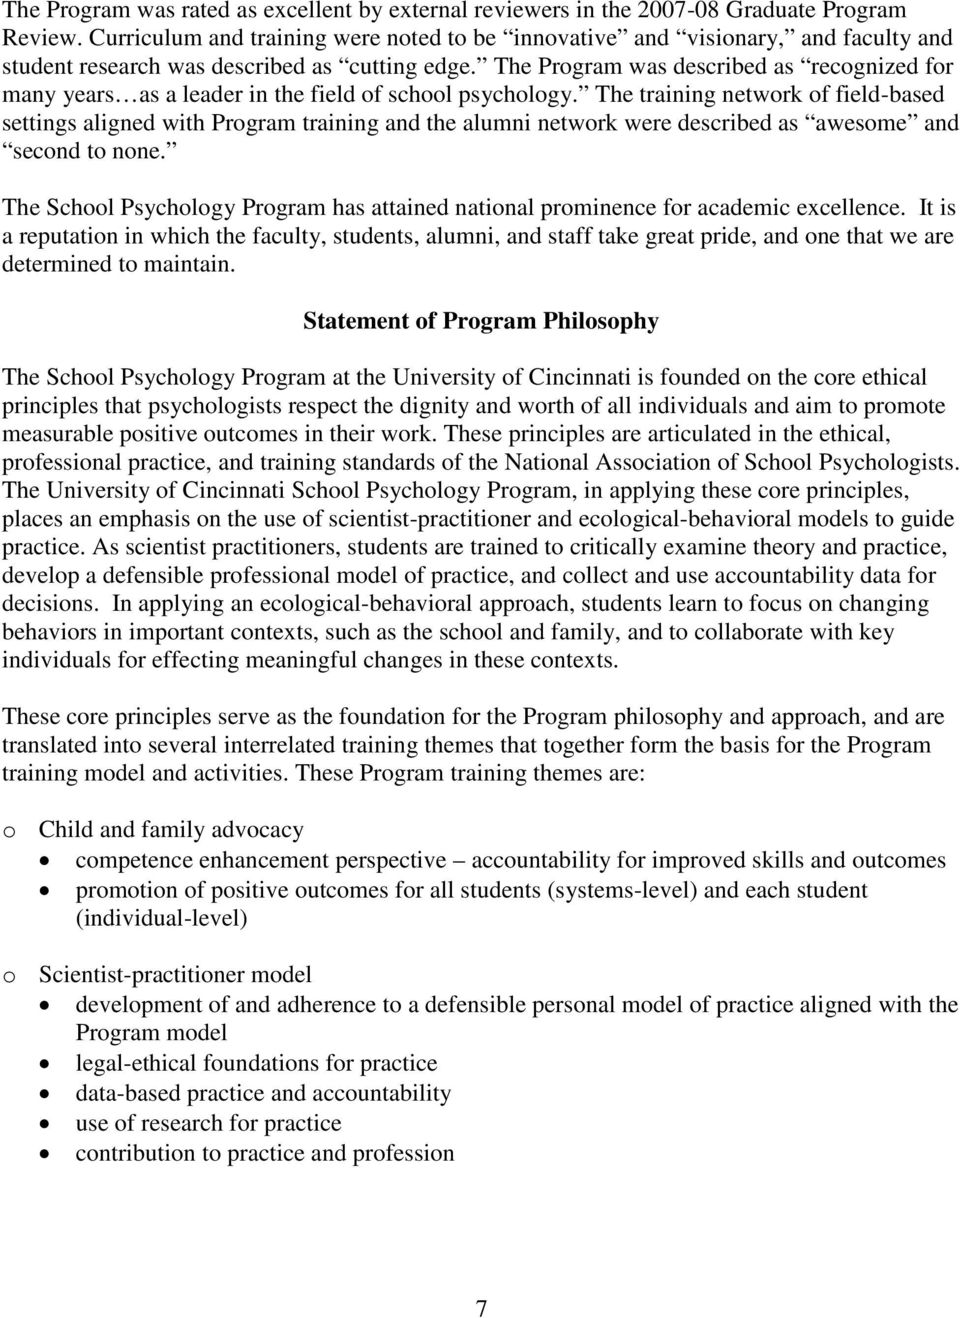 The Program was described as recognized for many years as a leader in the field of school psychology.